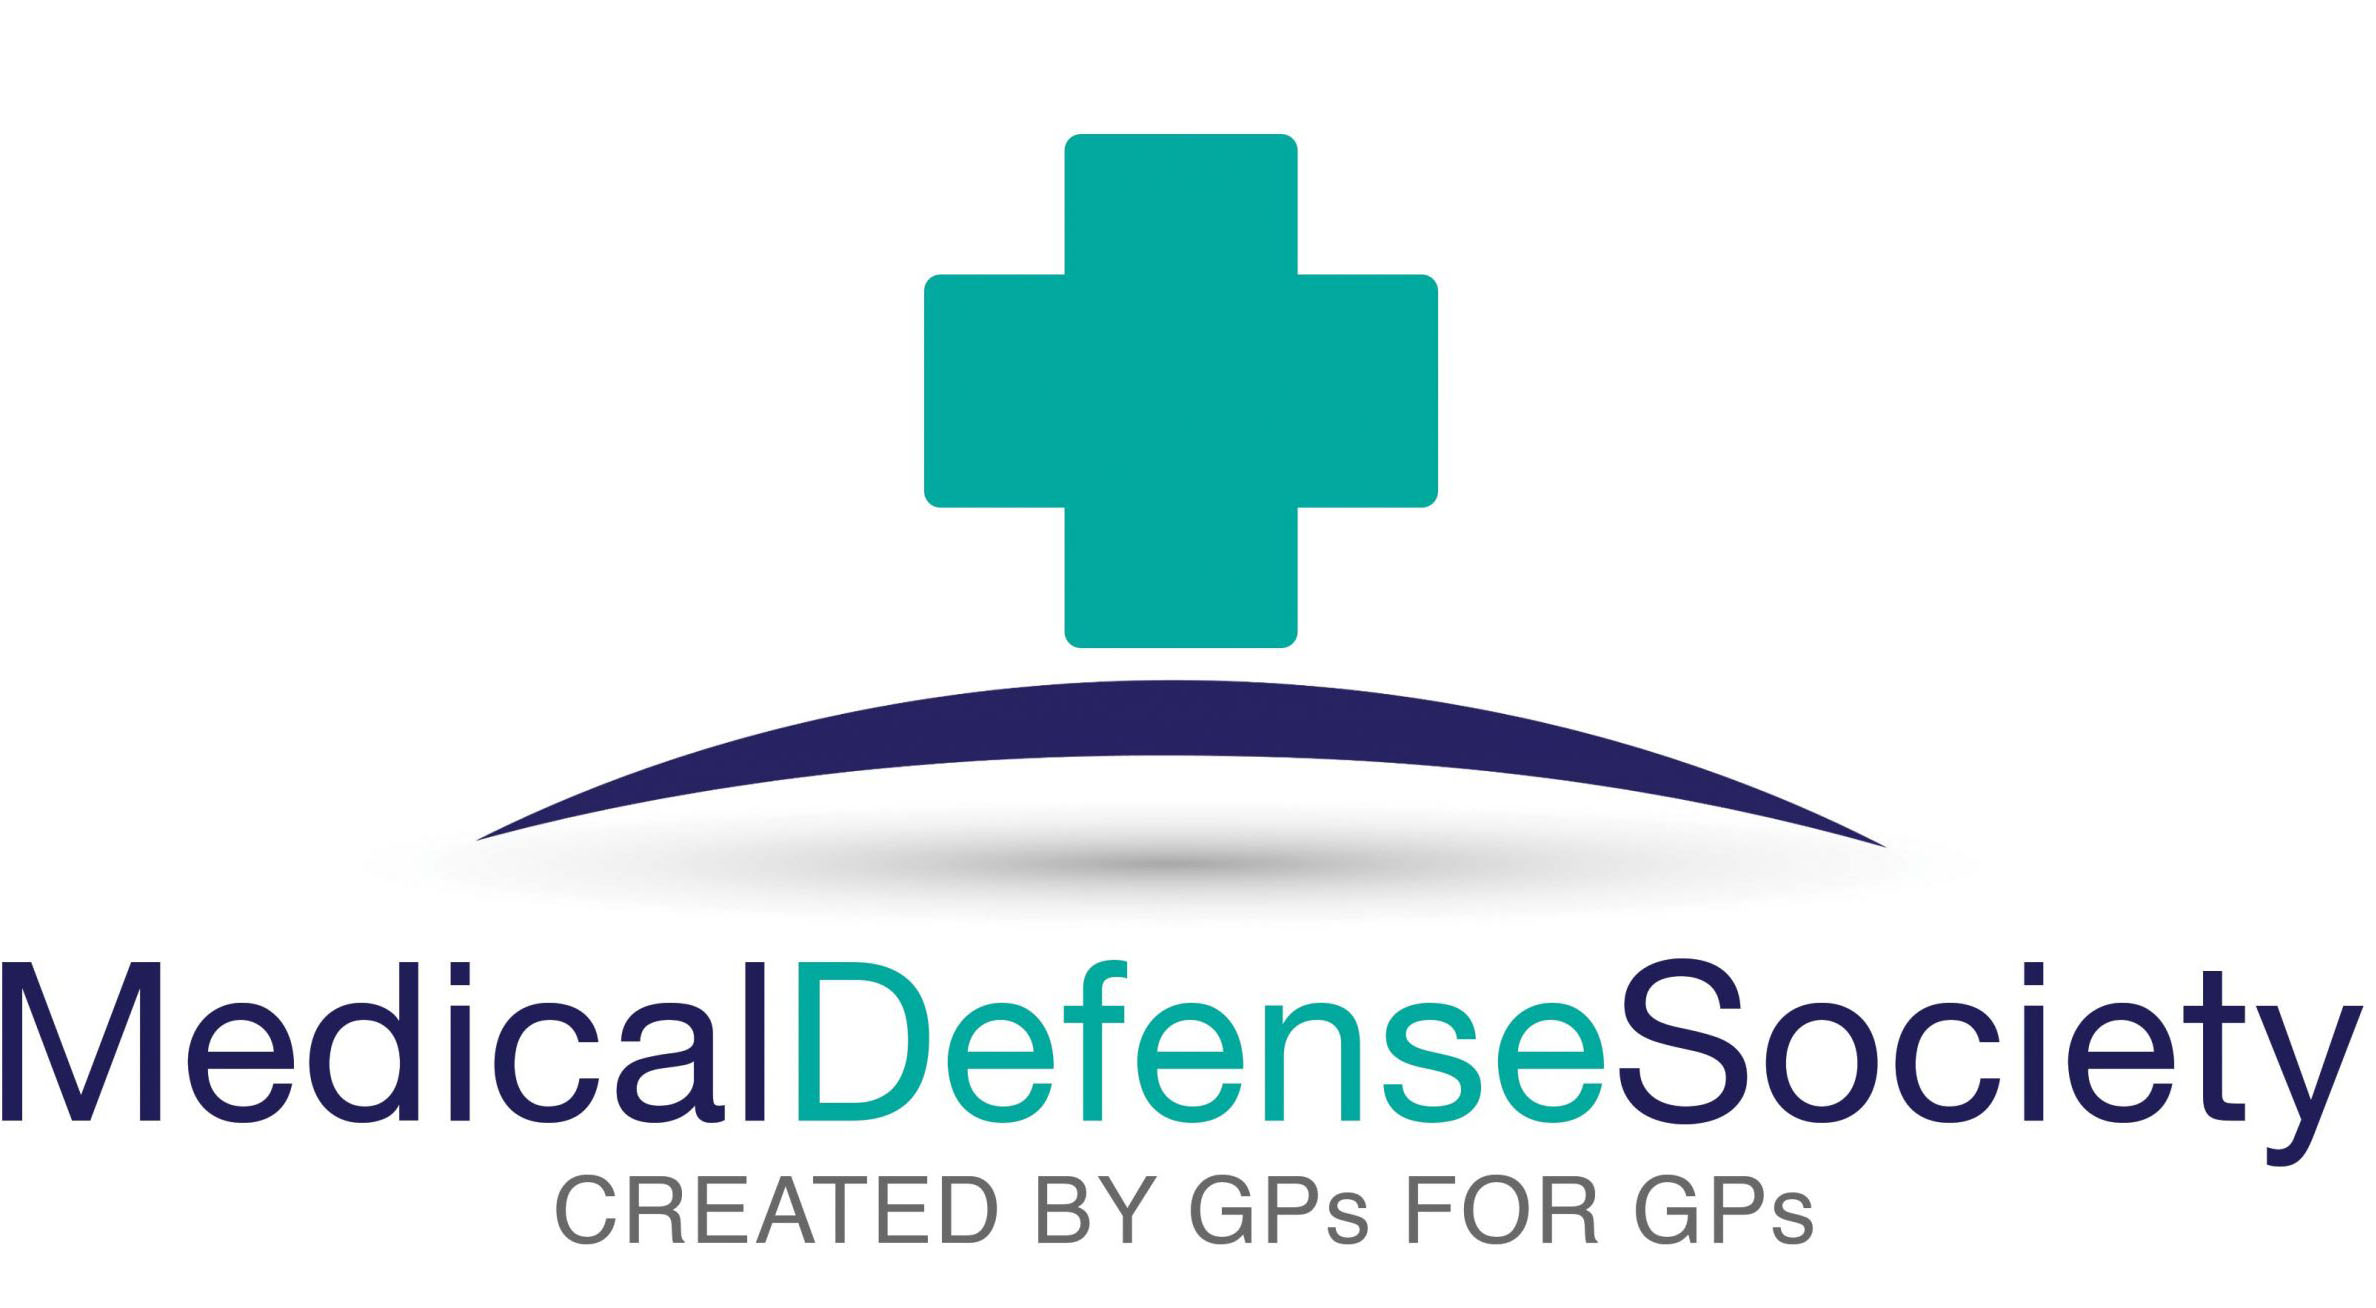 Medical Defense Society